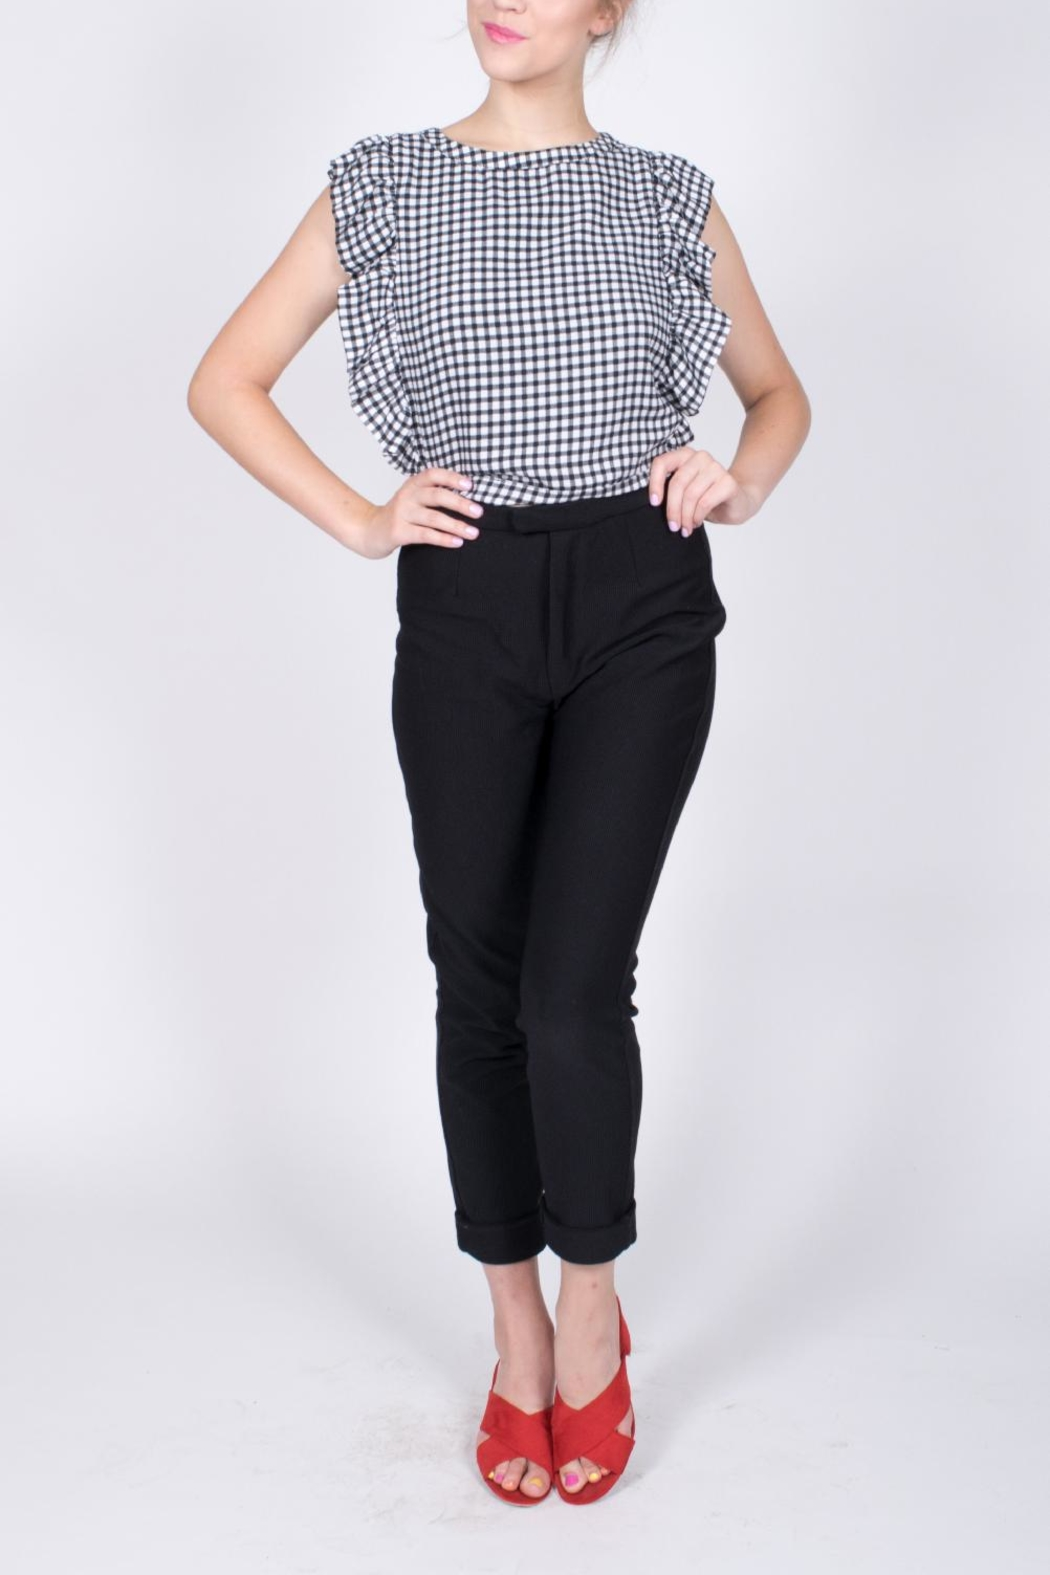 Sugarlips Gingham Ruffle Crop Top - Back Cropped Image